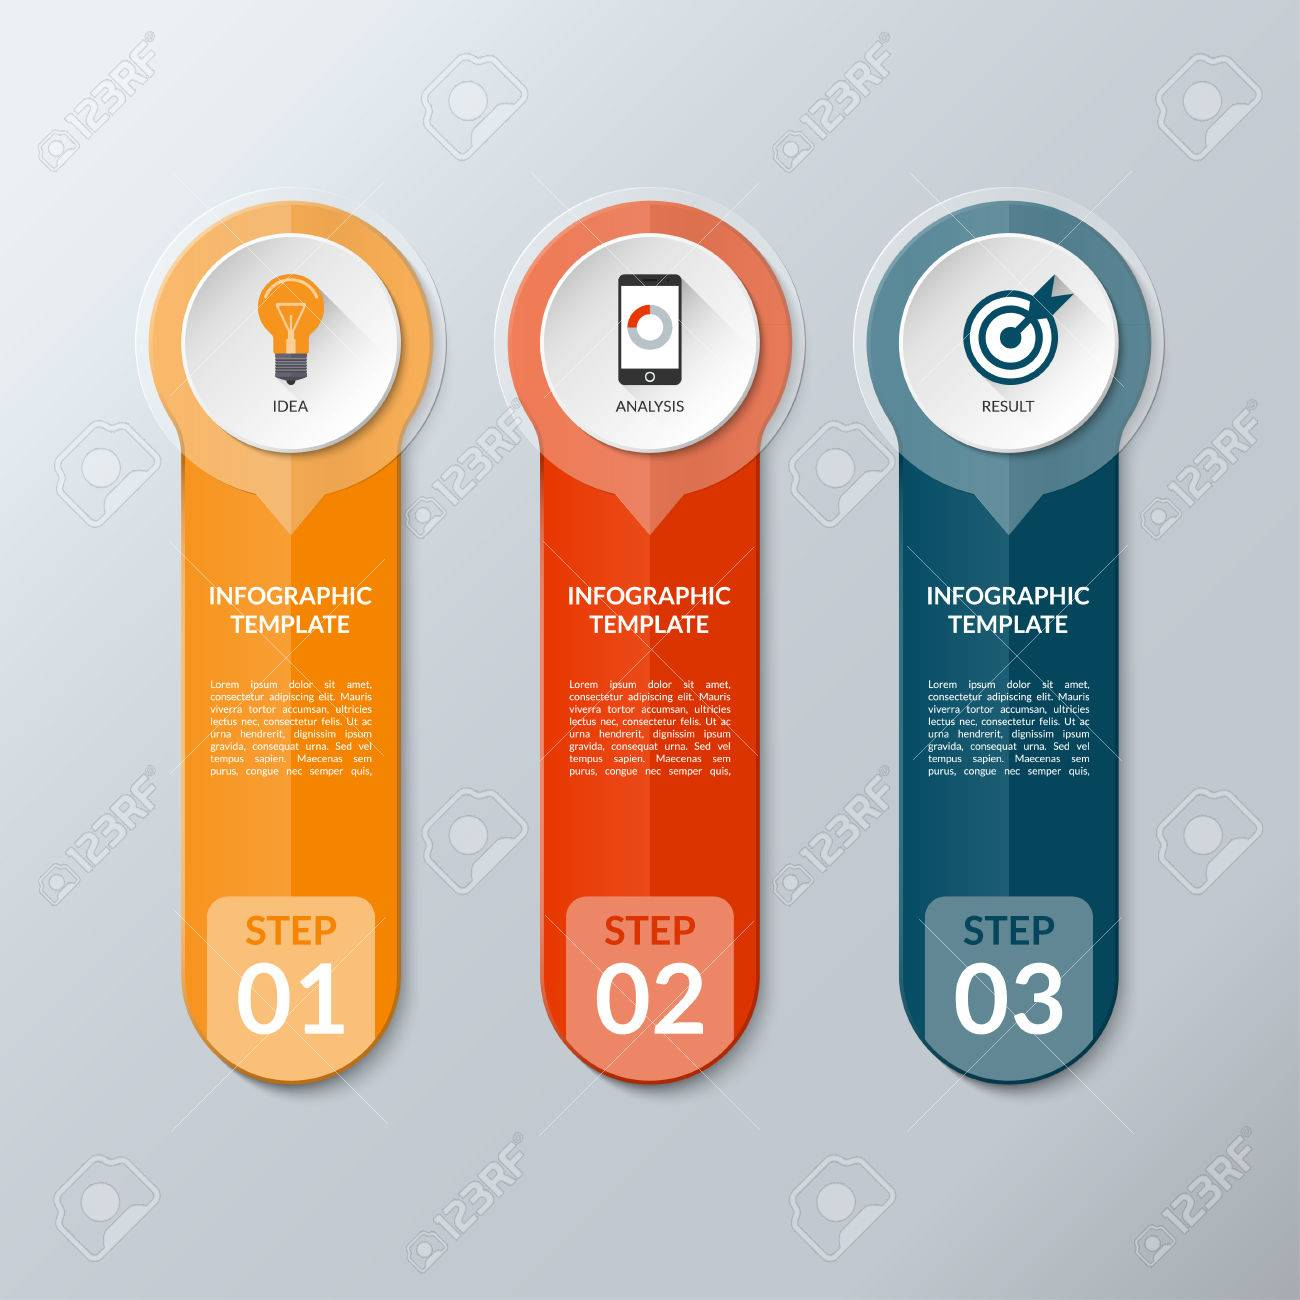 vector vector infographic layout template with 3 buttons steps parts options vertical banner with business icons and transparent design elements